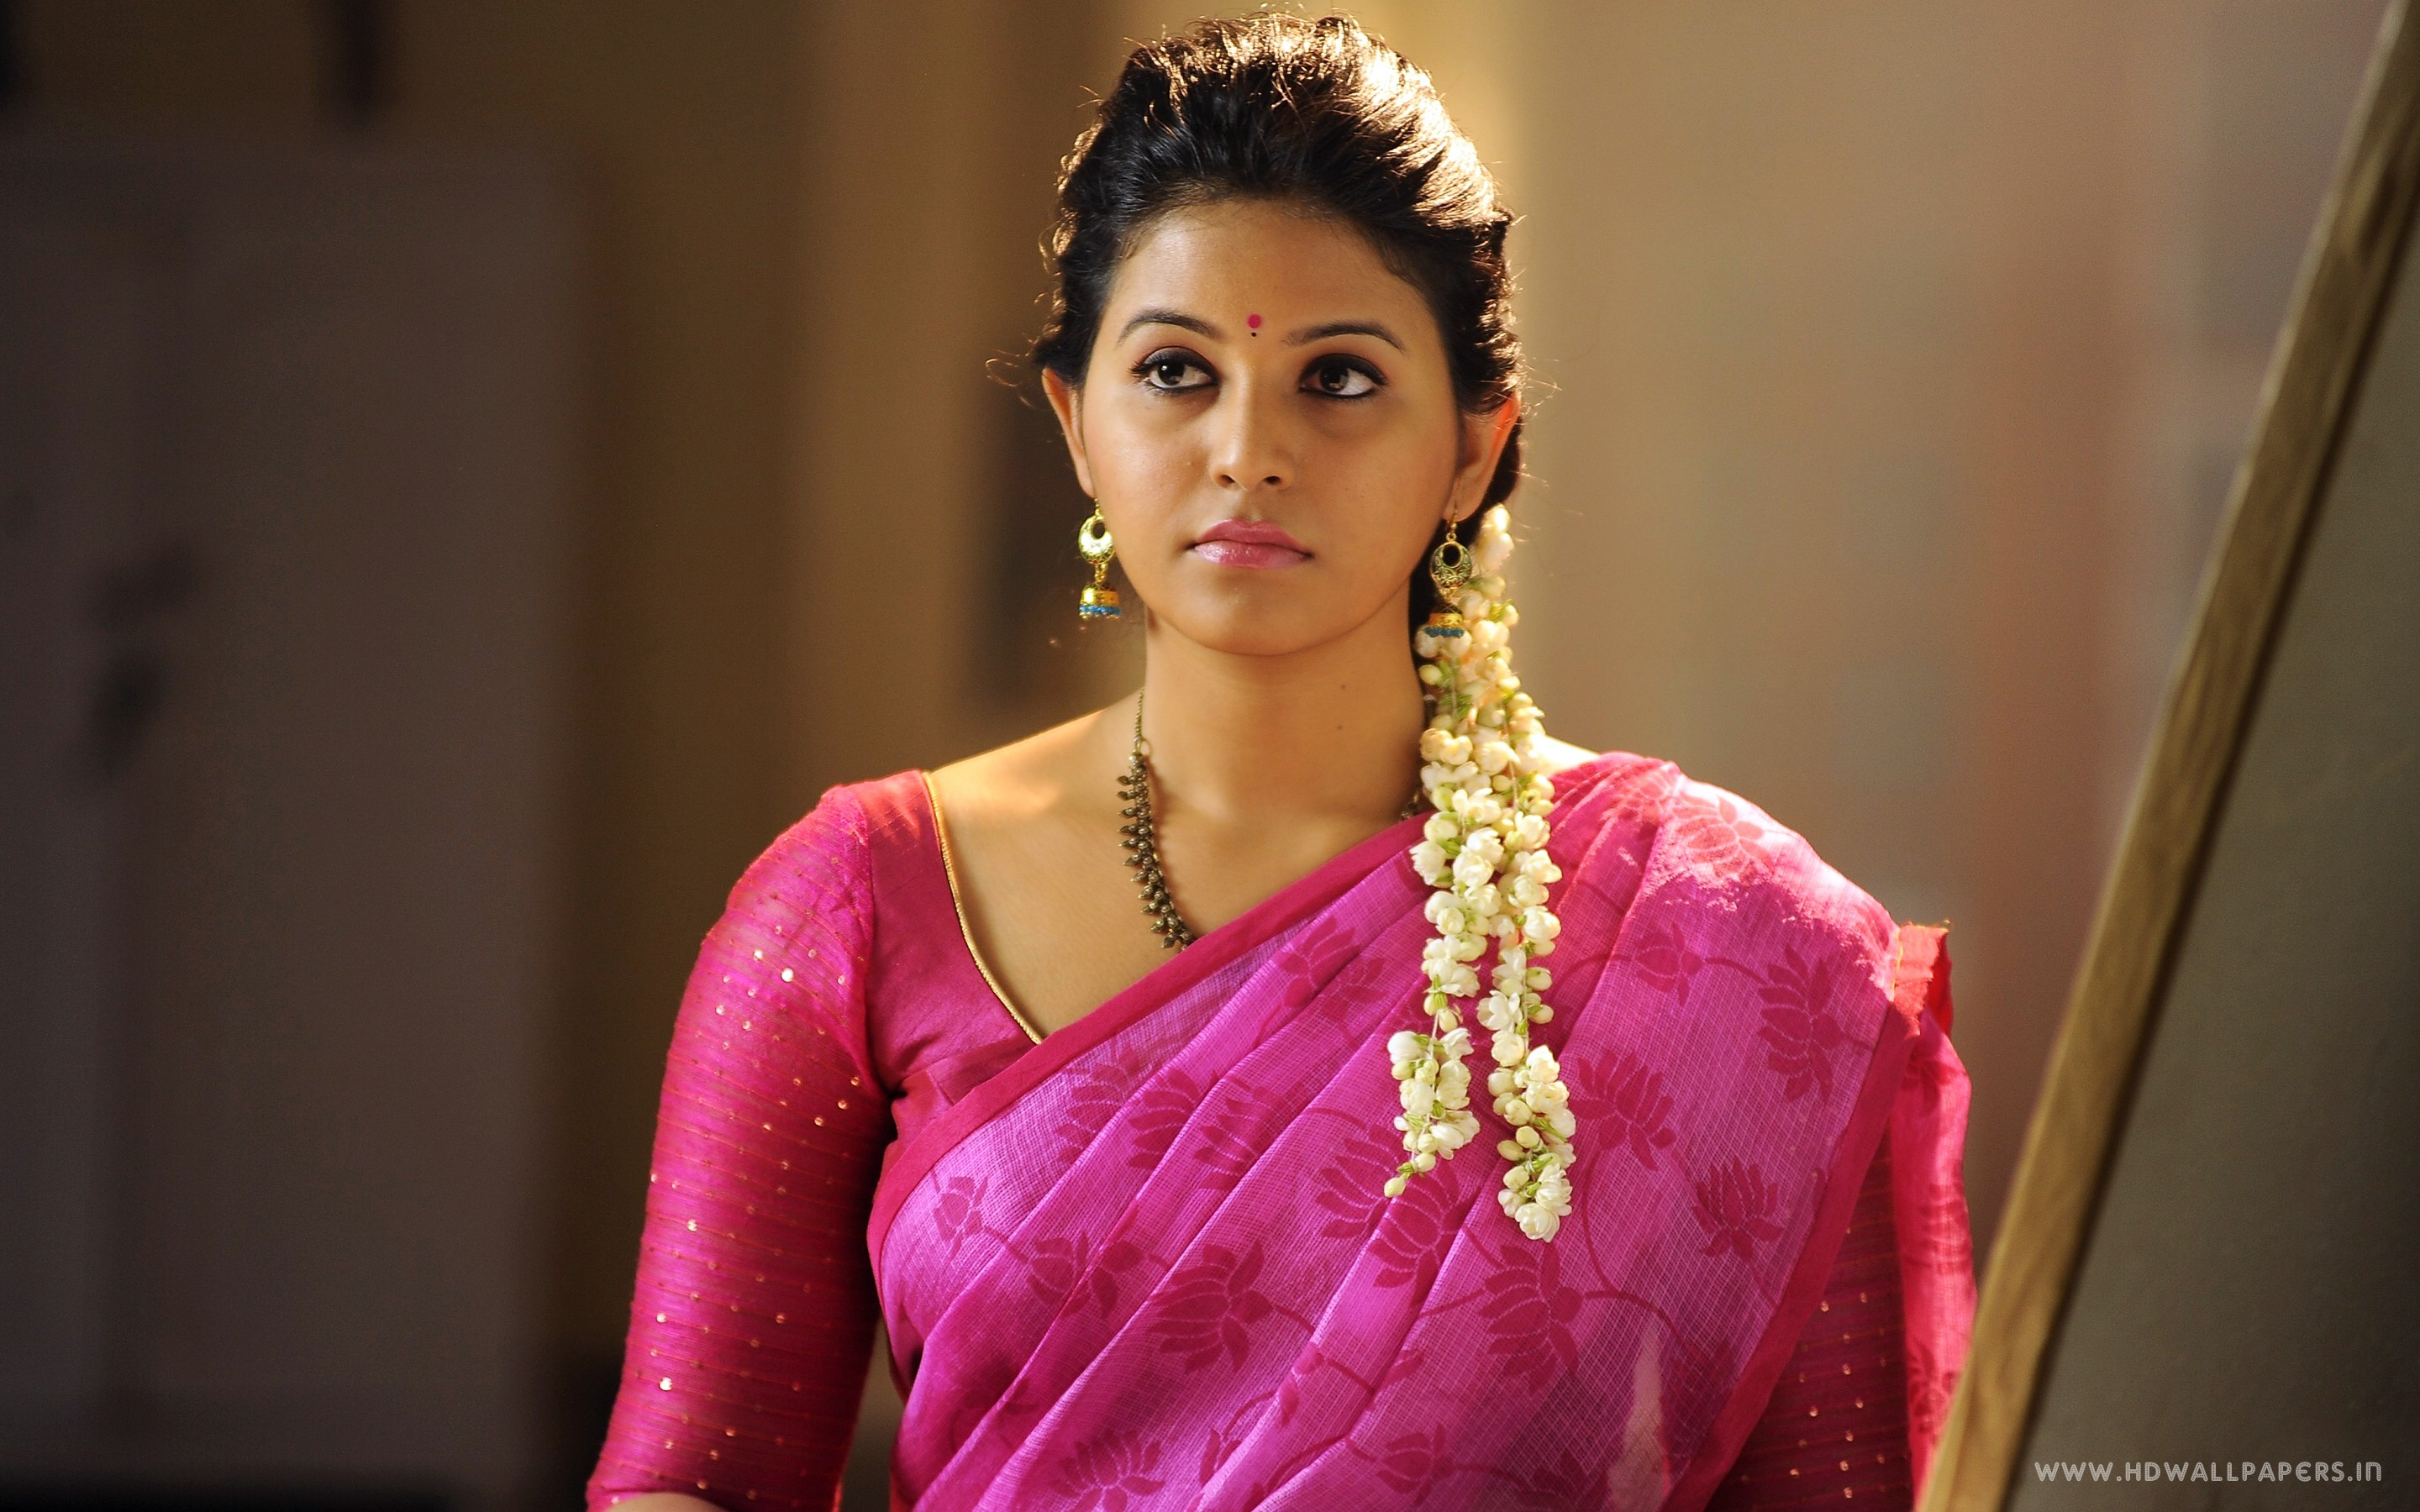 Beautiful Animated Girl Wallpapers Tamil Actress Anjali Wallpapers In Jpg Format For Free